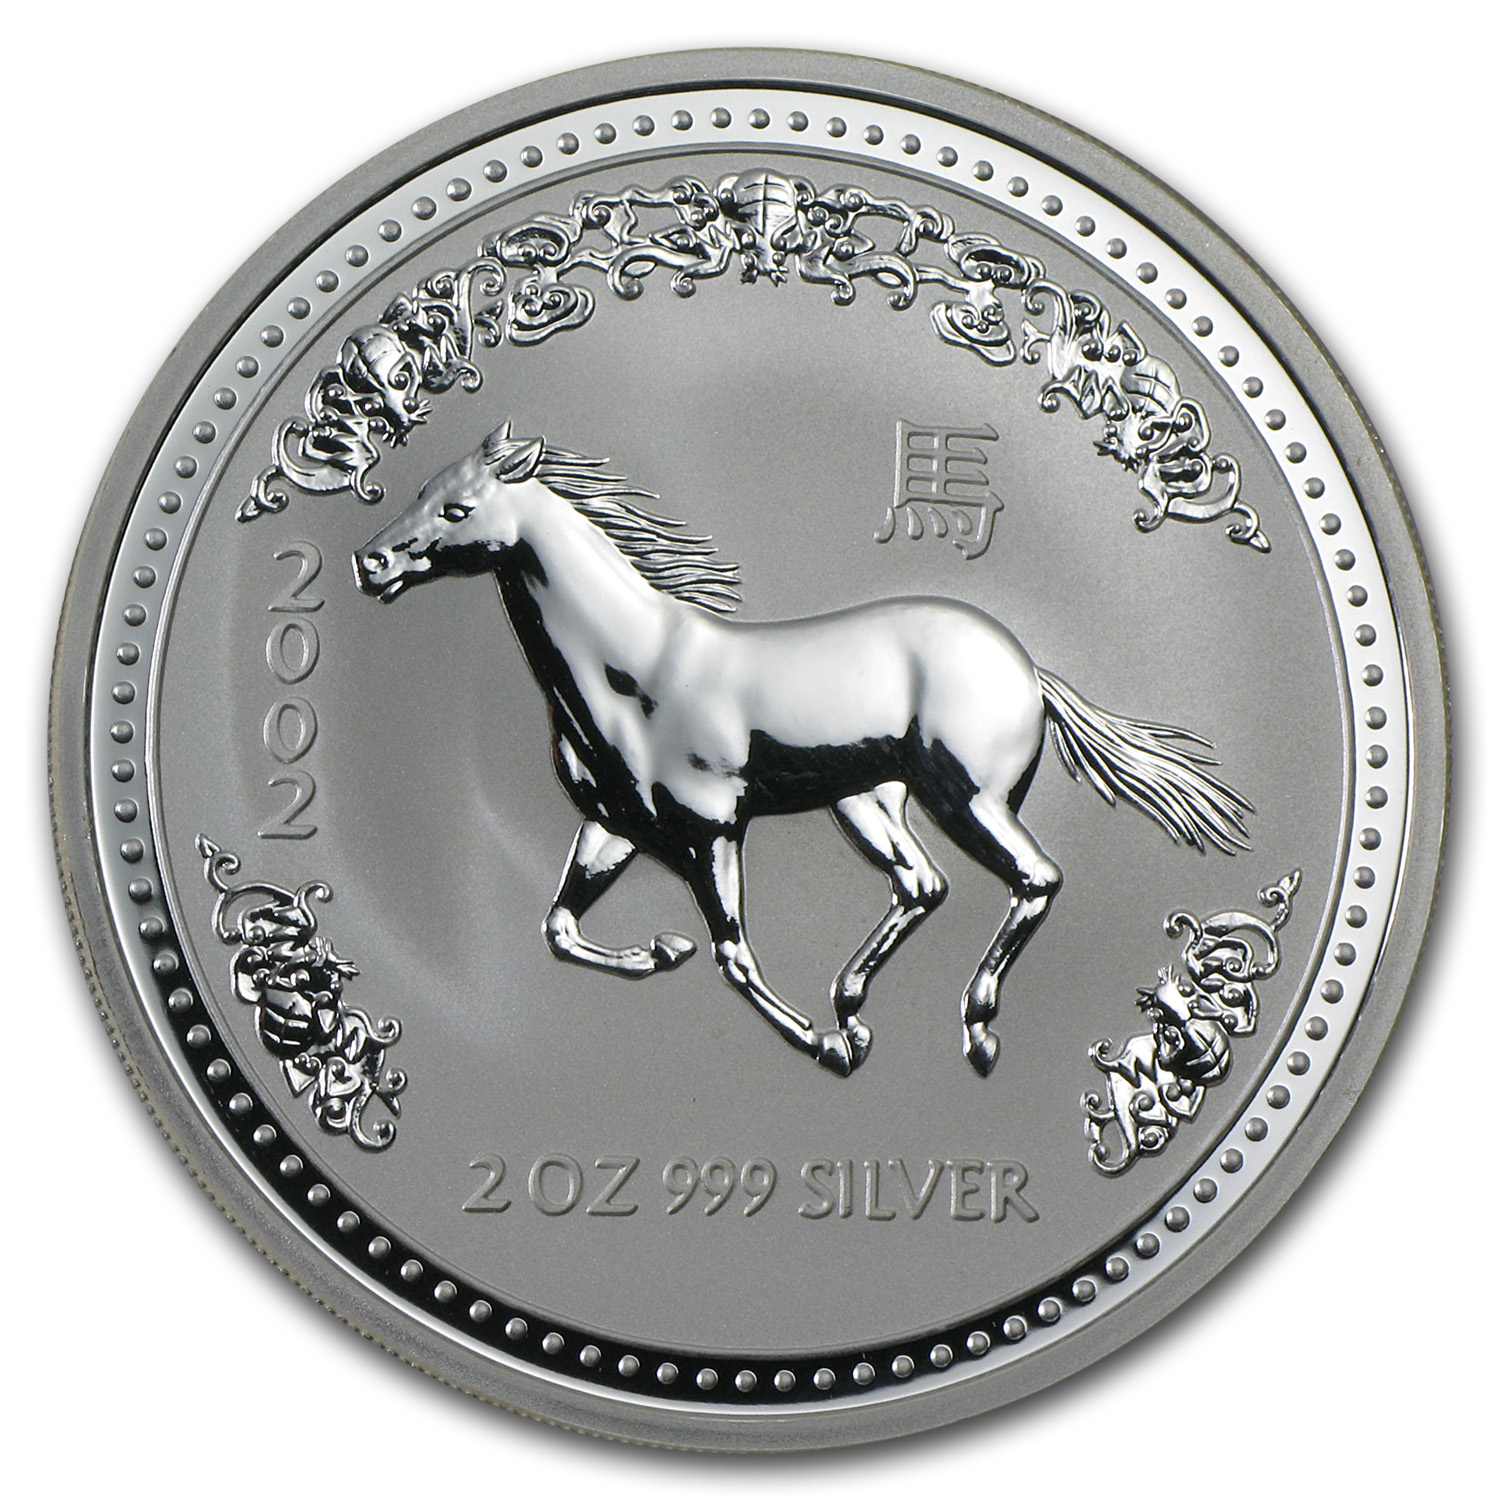 2002 2 oz Silver Australian Year of the Horse BU